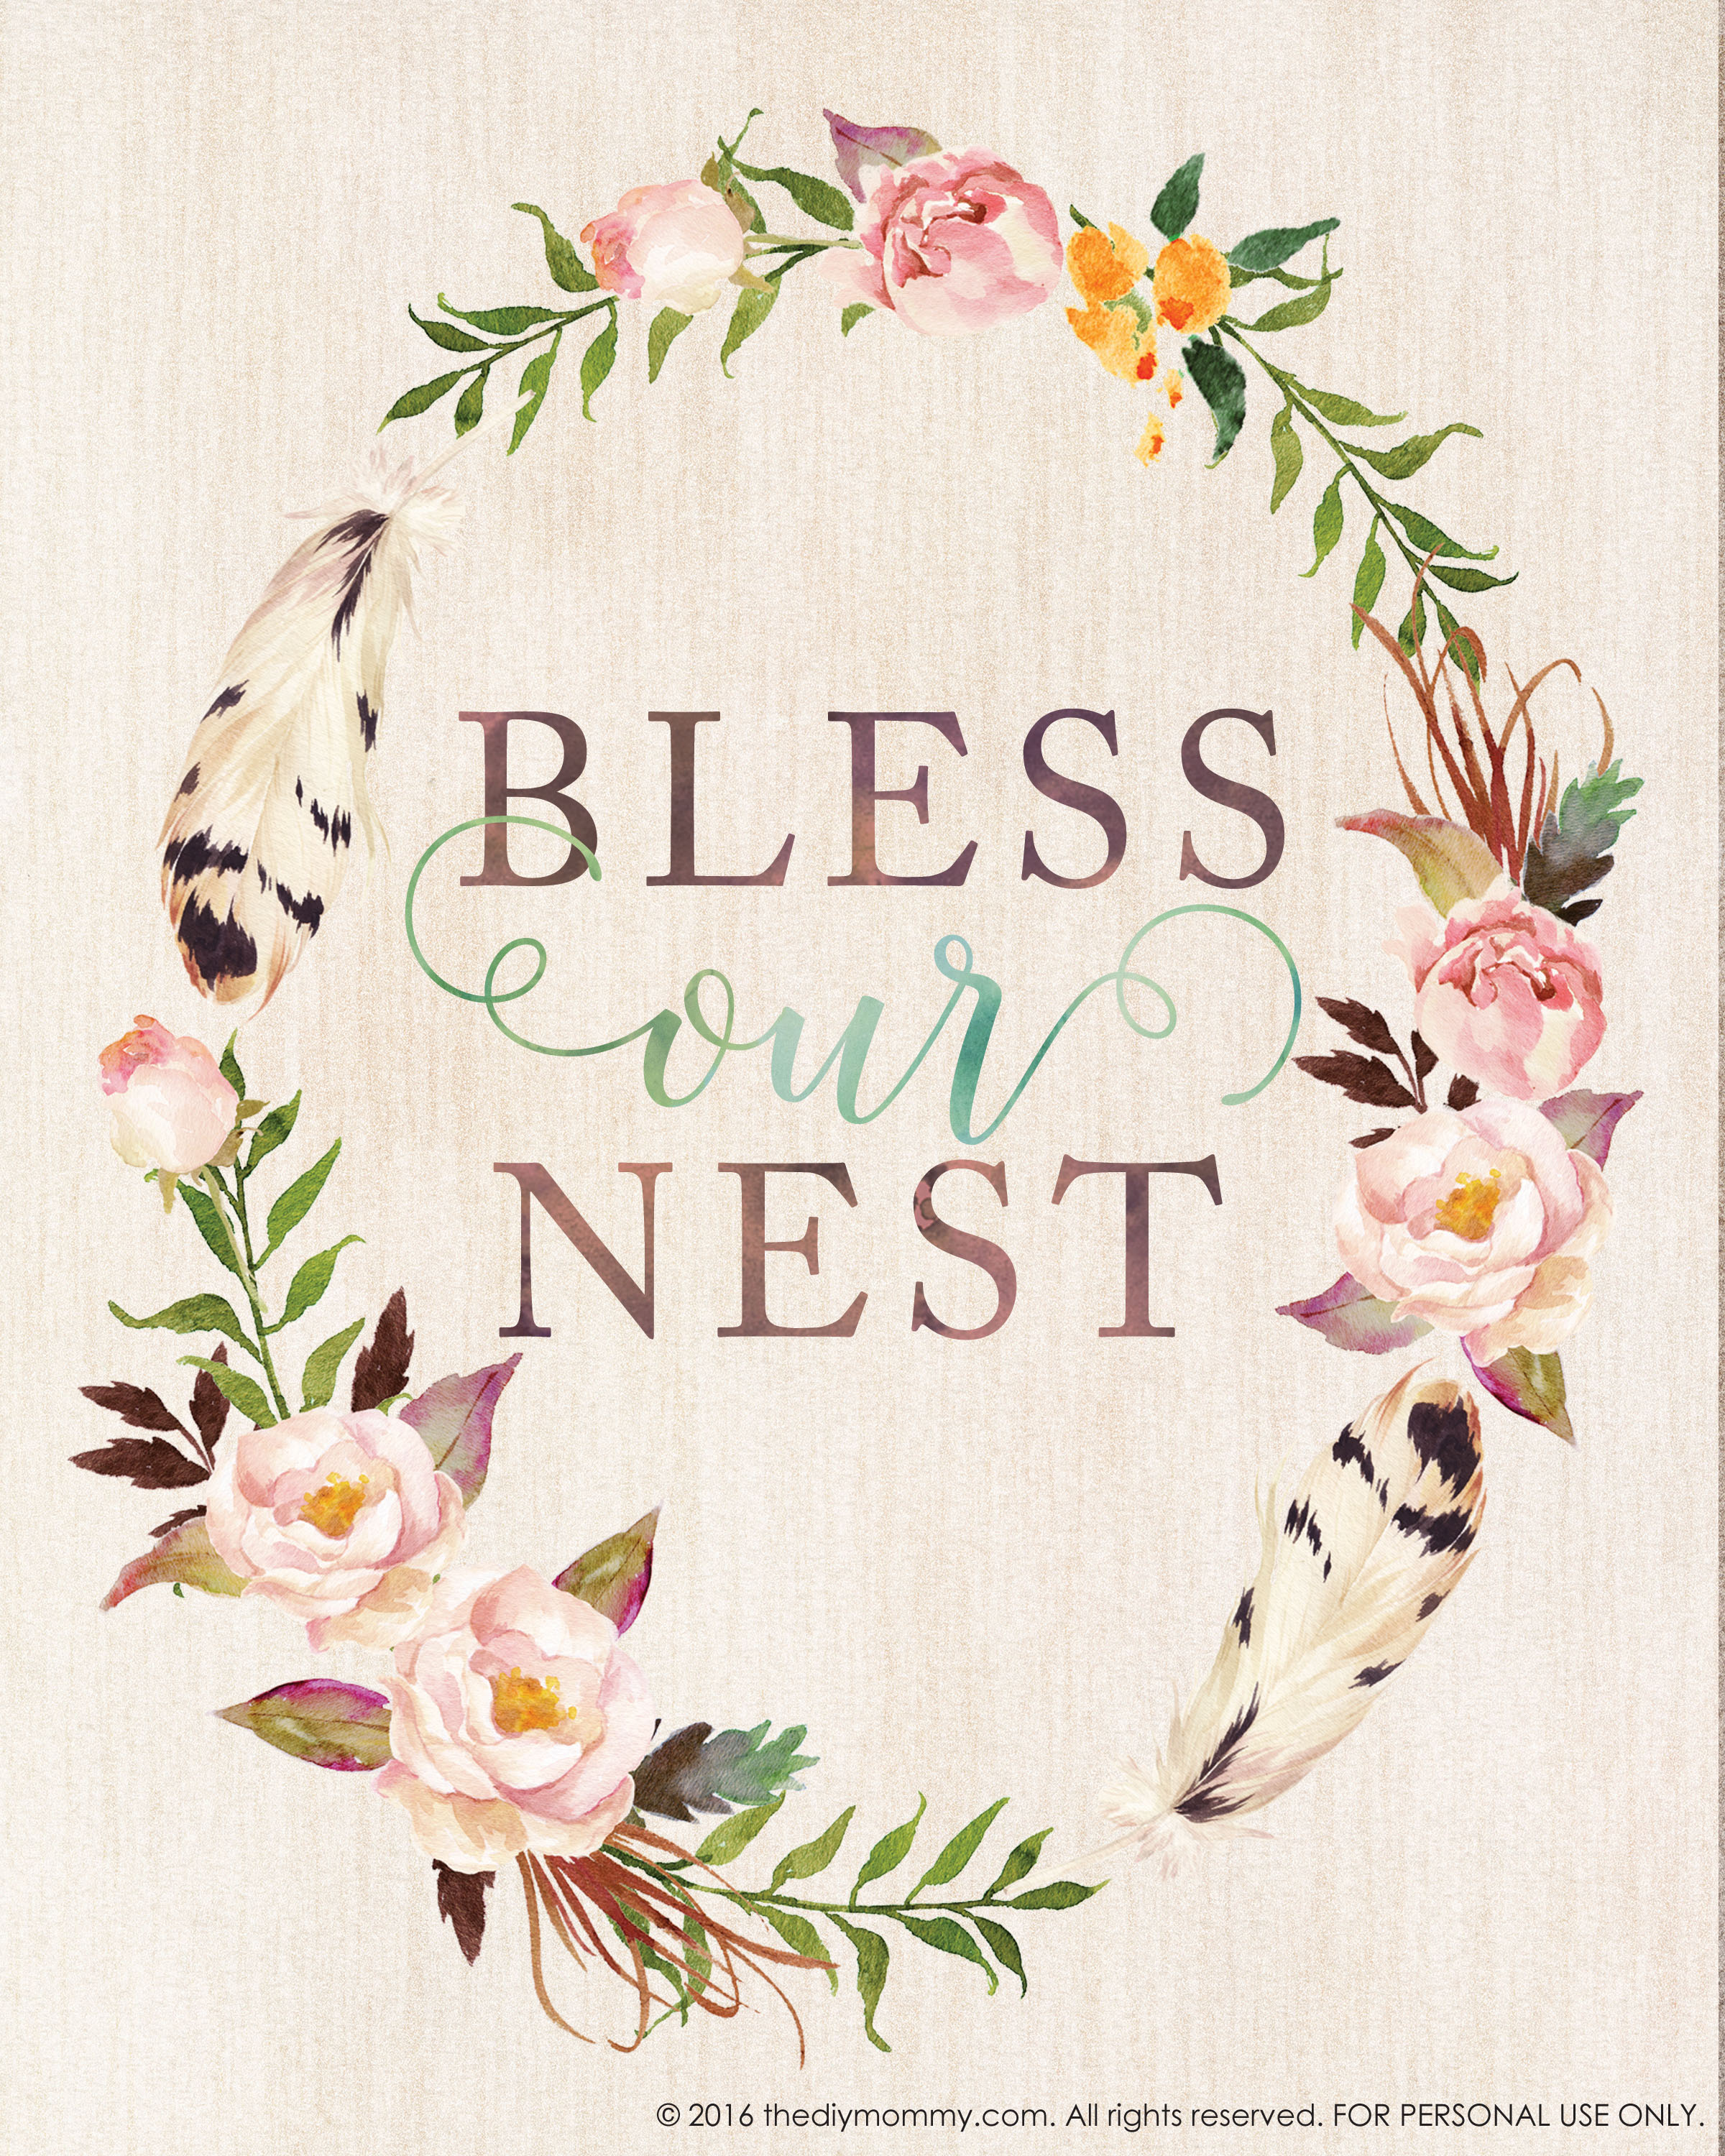 photograph regarding Printable Artwork titled Bless Our Nest Totally free Printable Watercolor Art for Spring